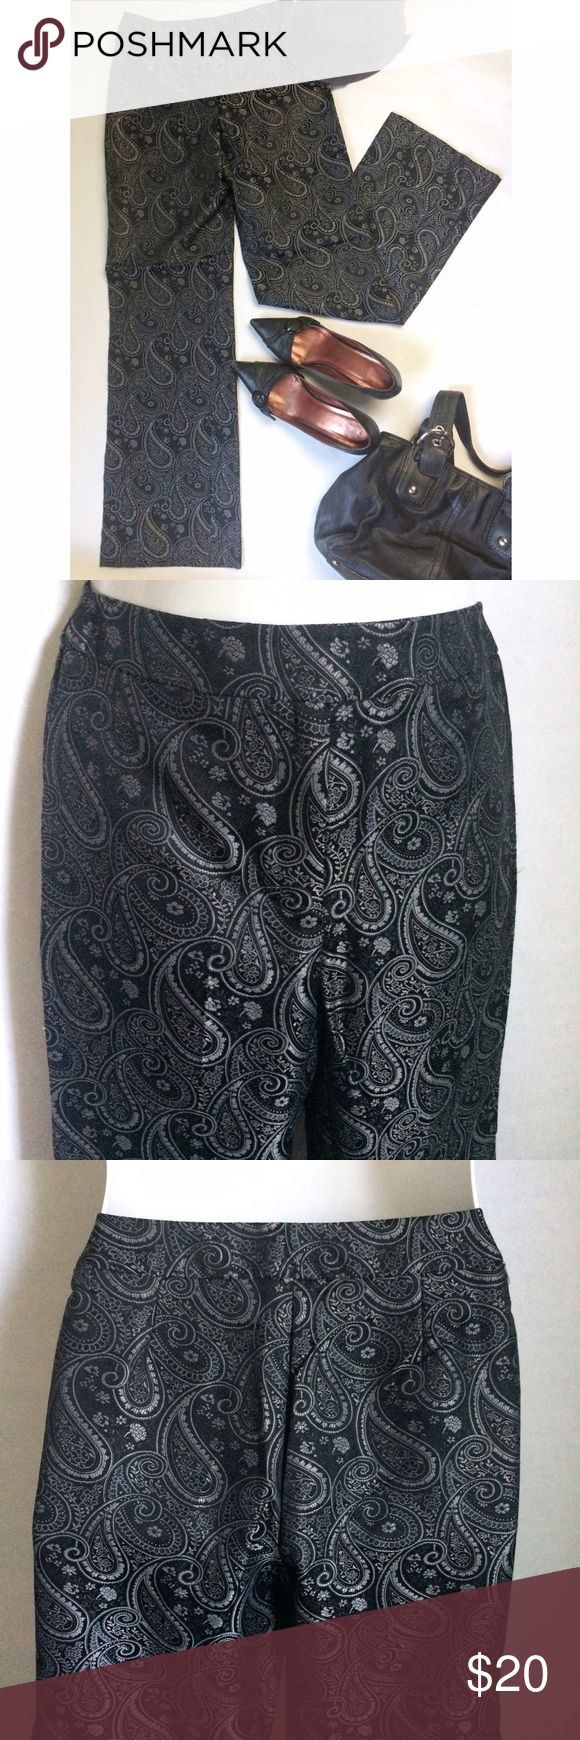 ✨NEW Listing✨New York & Co paisley pants NWOT New York & Co. black & silver paisley pants. High waist, straight leg, and zip front with hook & bar closure. Size 2. 53% nylon/47% polyester. Not interested in trades. NWOT New York & Company Pants Straight Leg